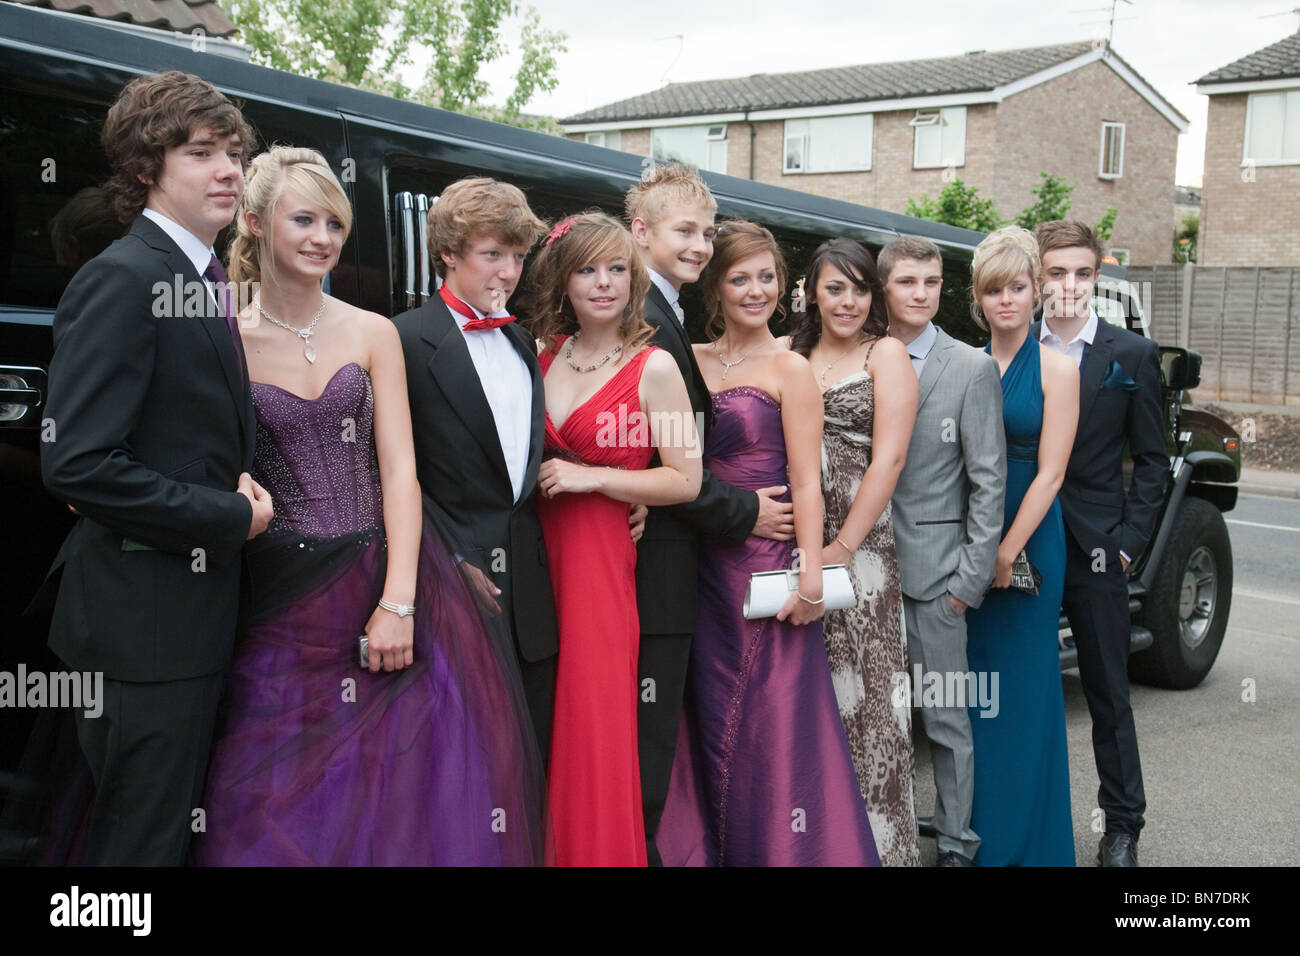 e321b4bbbf5 A group of teenage girls and boys dressed up ready for their school prom  posing in